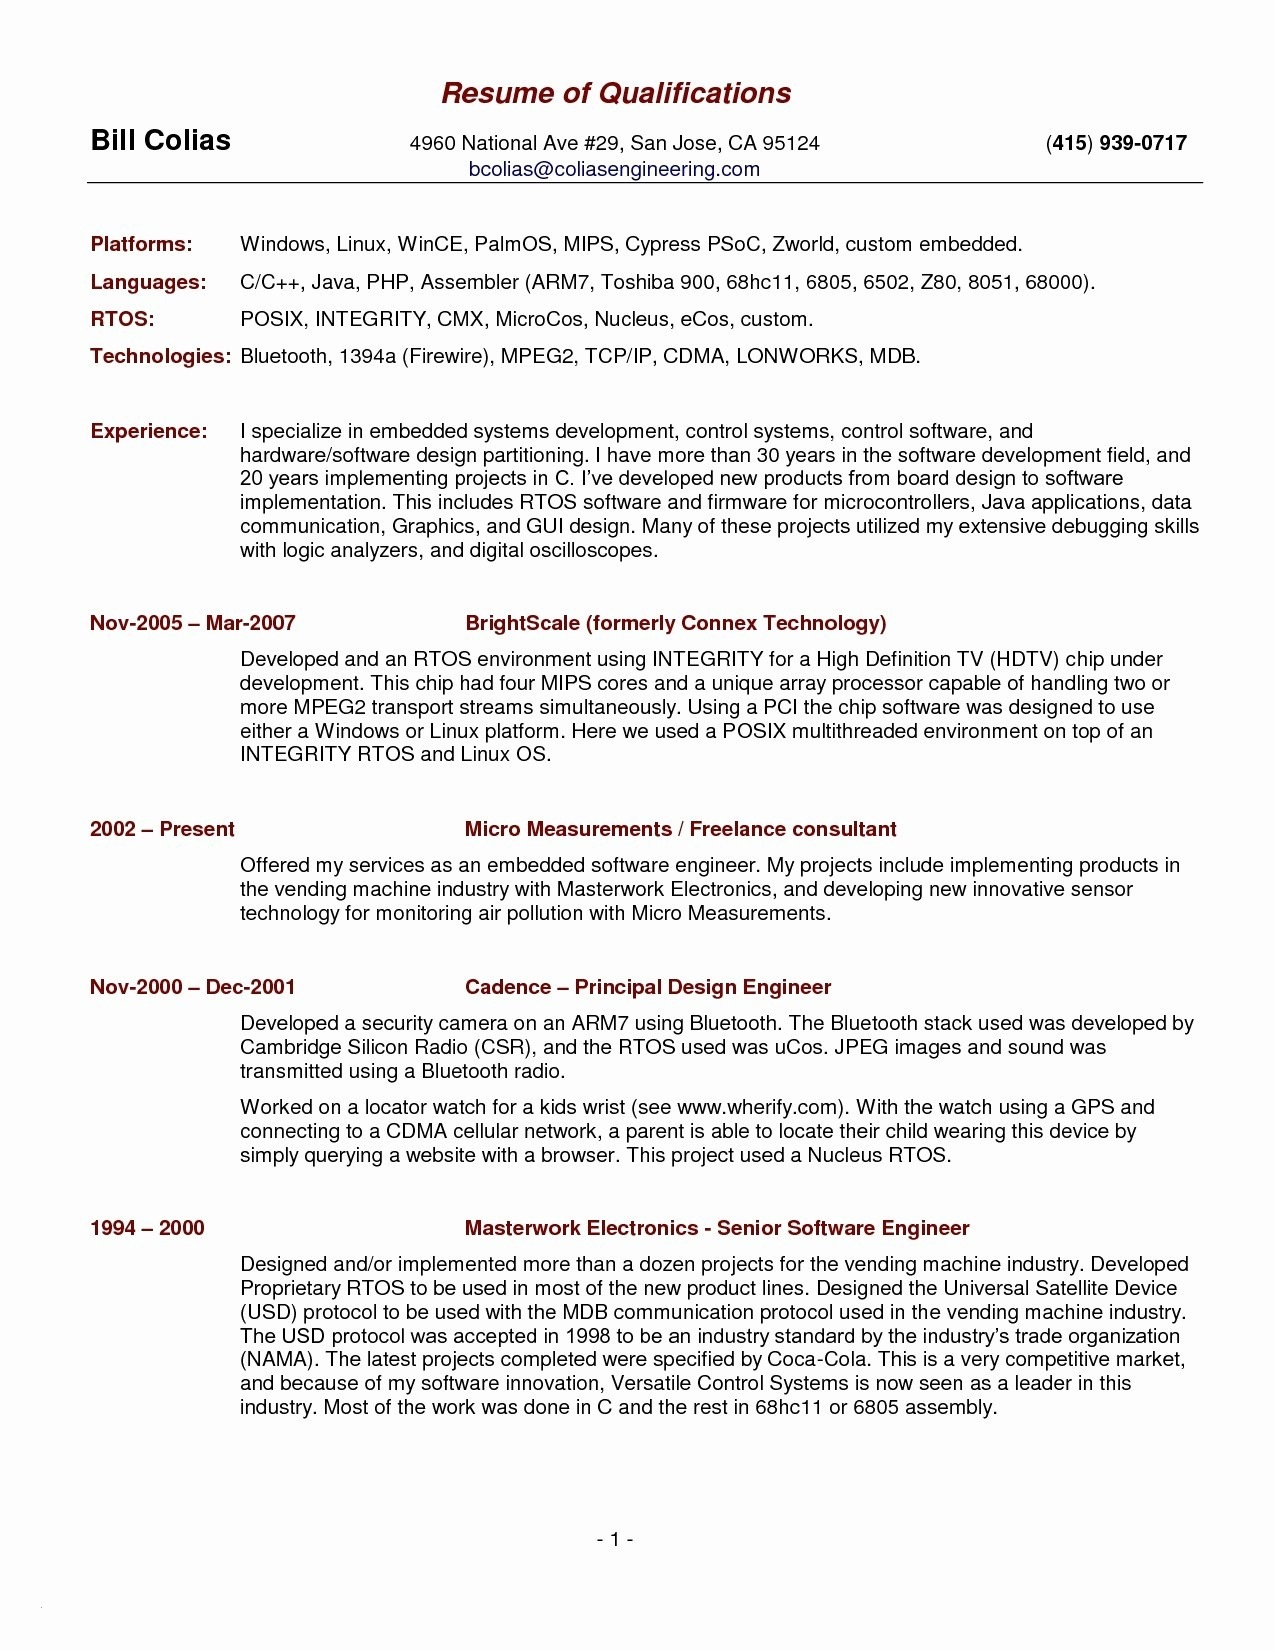 freelance resume template Collection-Resume Templates Pdf Free Inspirational Lovely Pr Resume Template Elegant Dictionary Template 0d Archives 6-e